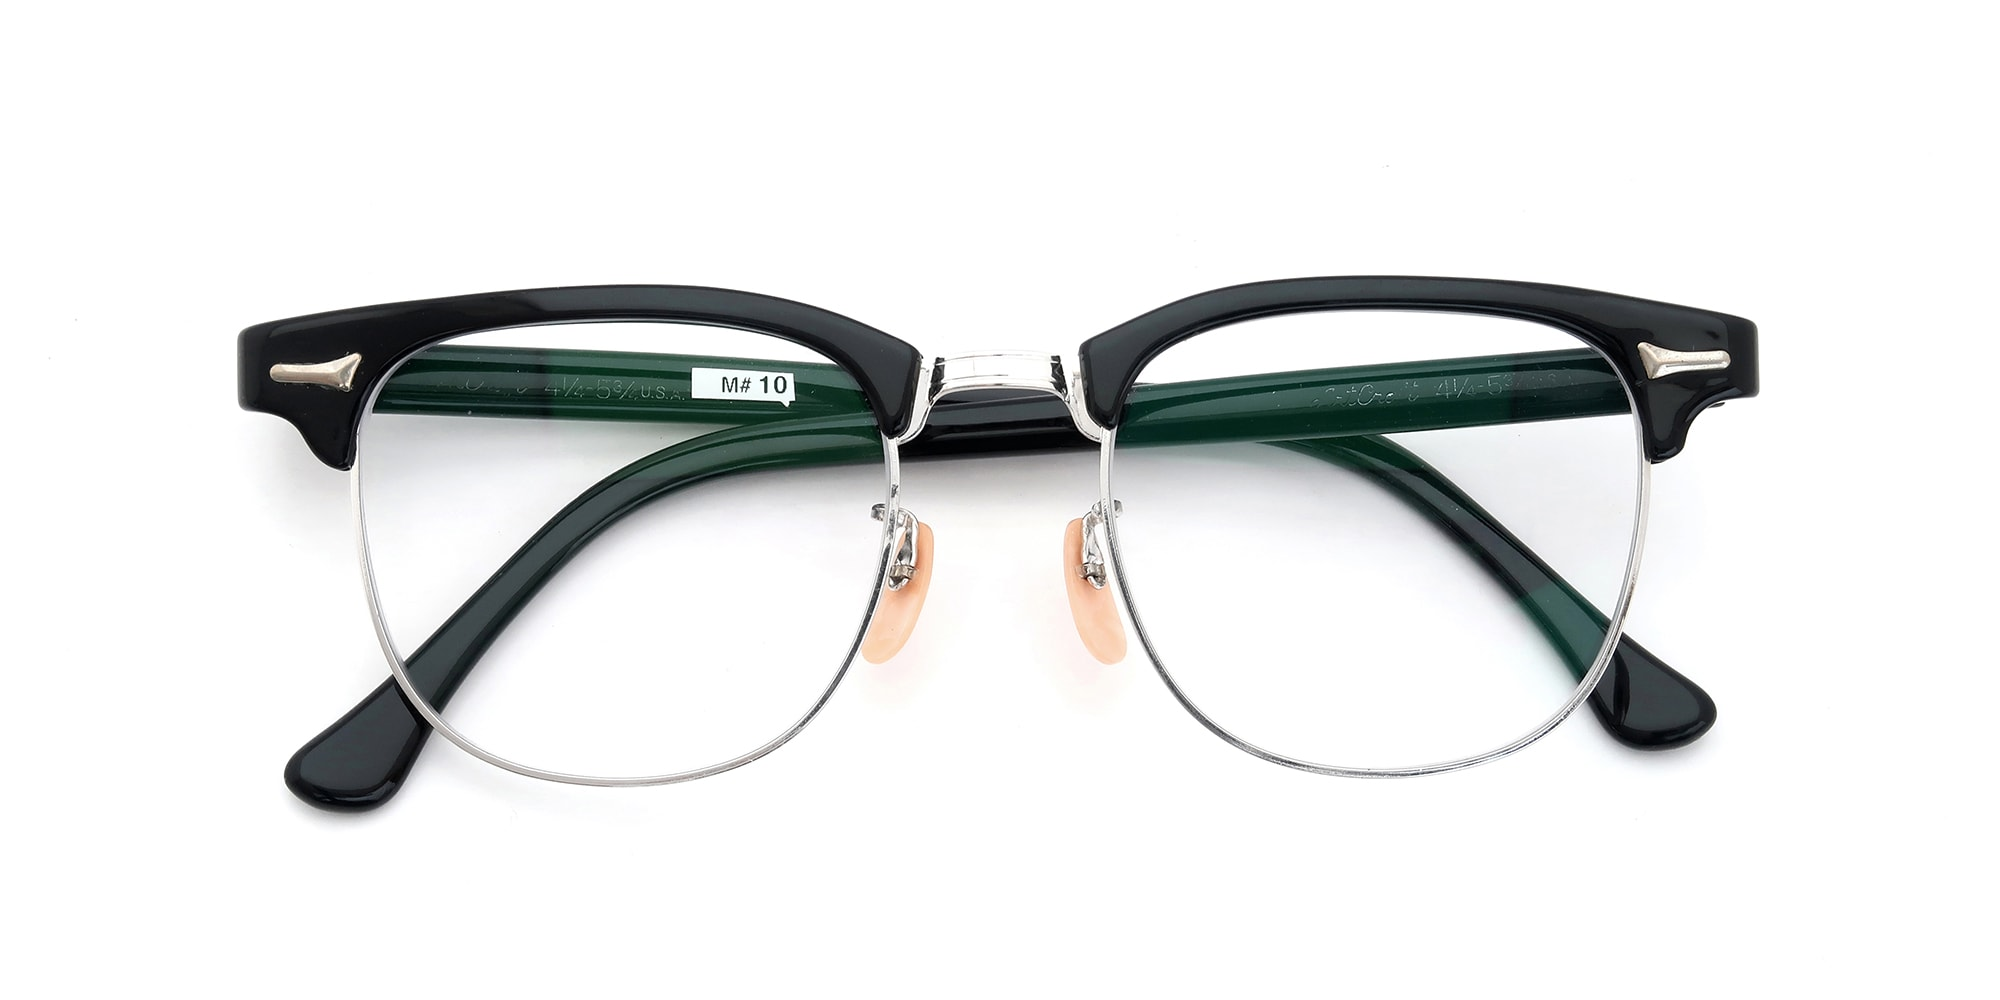 The Spectacle メガネ 1950s-60s Artcraft Optical Combination Black/WG 48-20 イメージ5